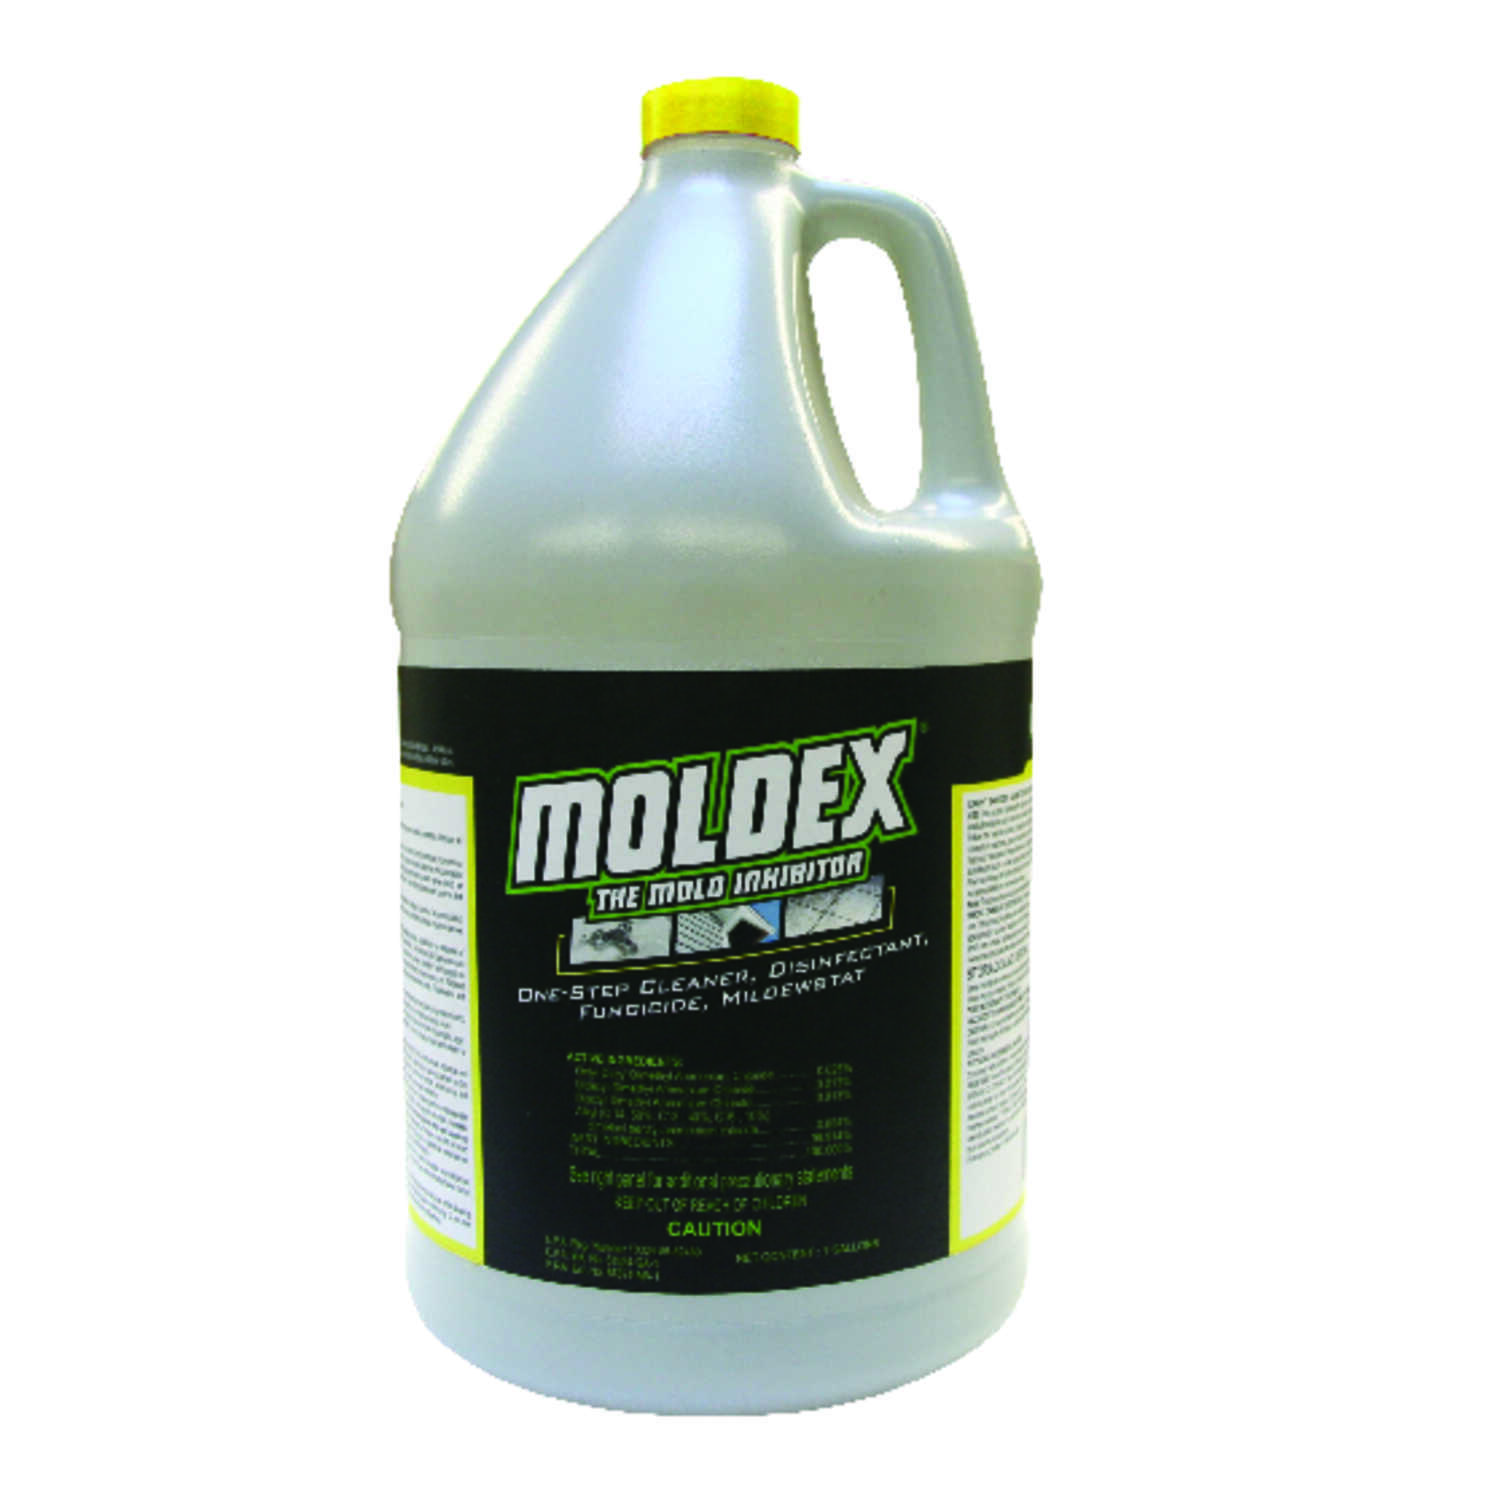 Moldex  Mold Killer  No Scent Disinfectant  1 gal. Liquid